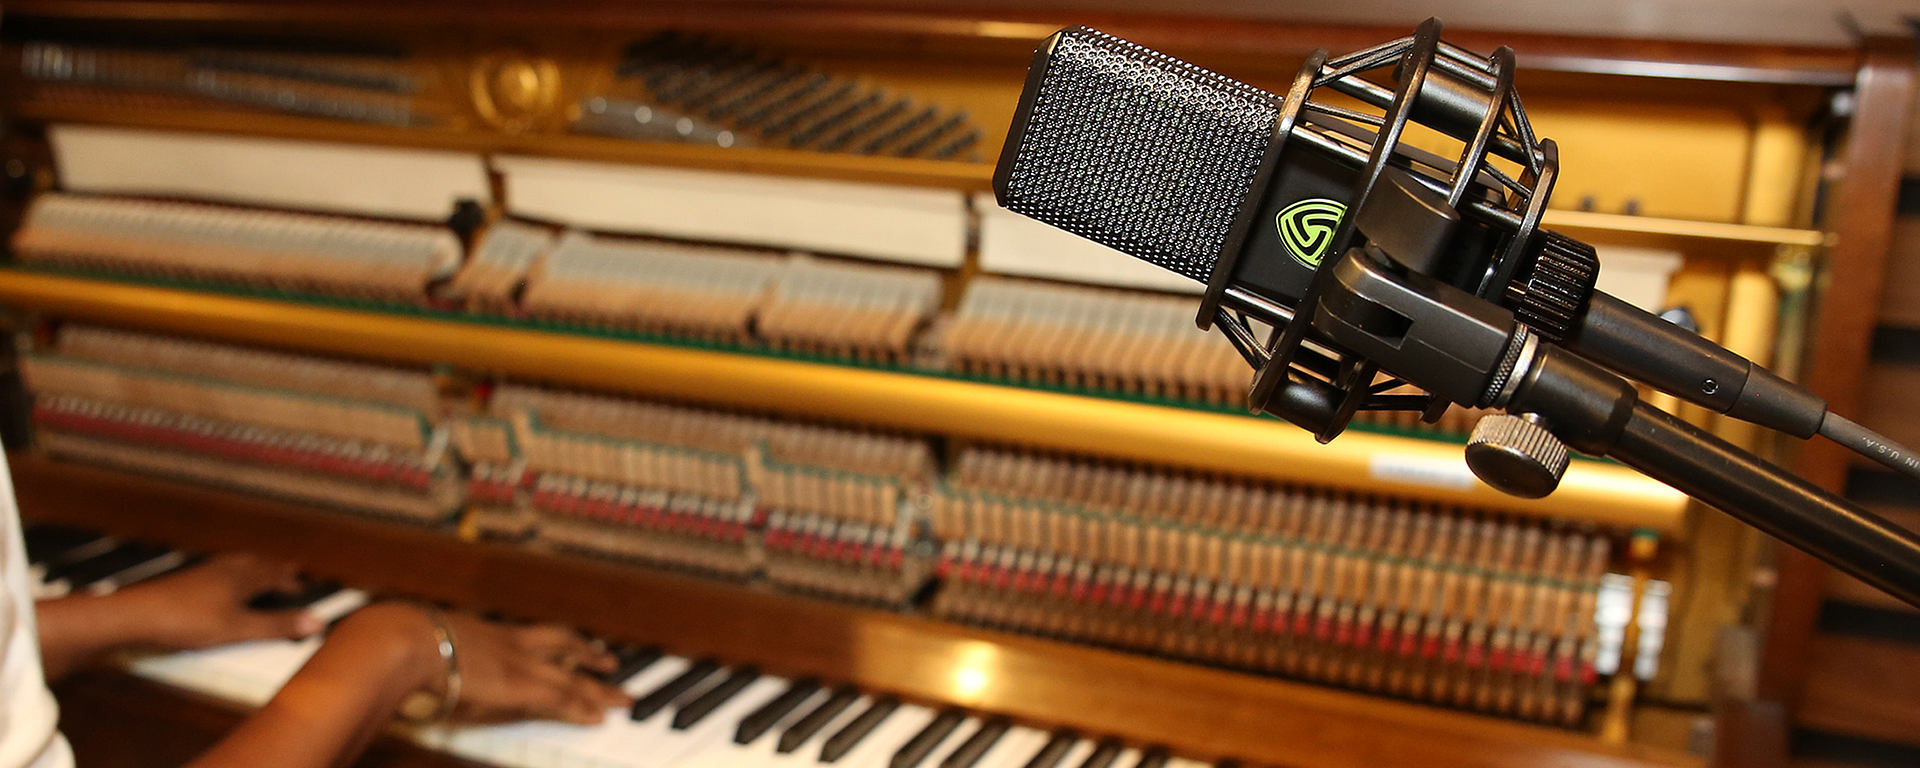 Recording upright piano in studio with the LCT 840 multi-pattern tube microphone